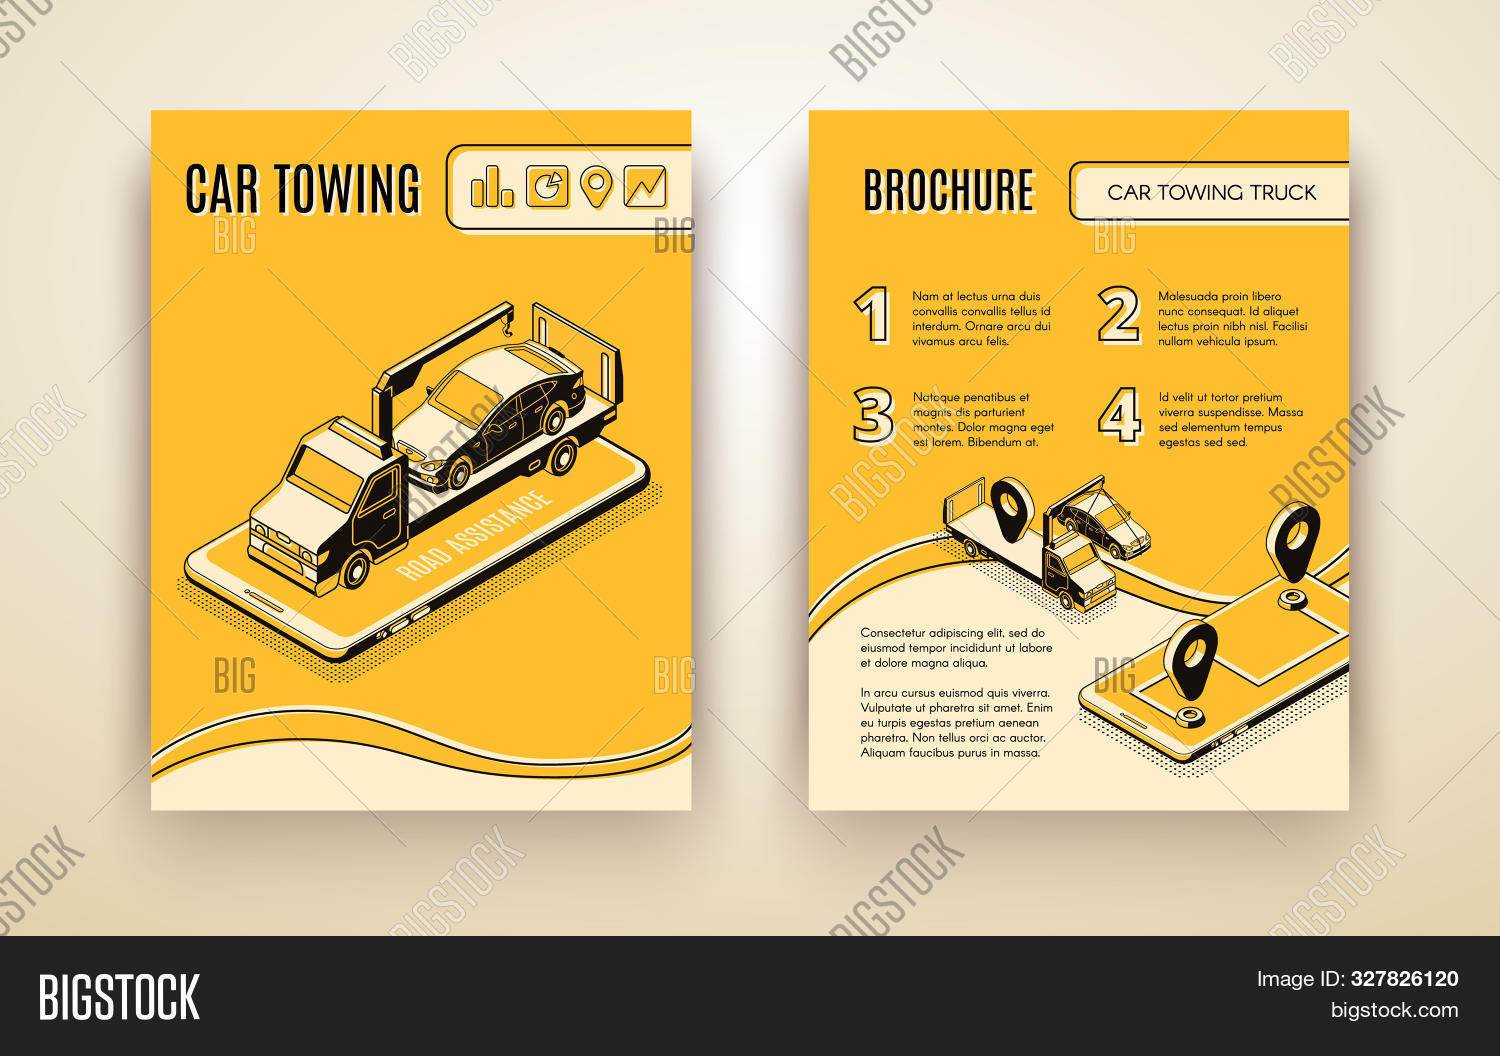 Car towing company, road assistant, car repair service isometric advertising brochure or booklet page template. Flatbed truck on smartphone screen transporting broken car line art illustration